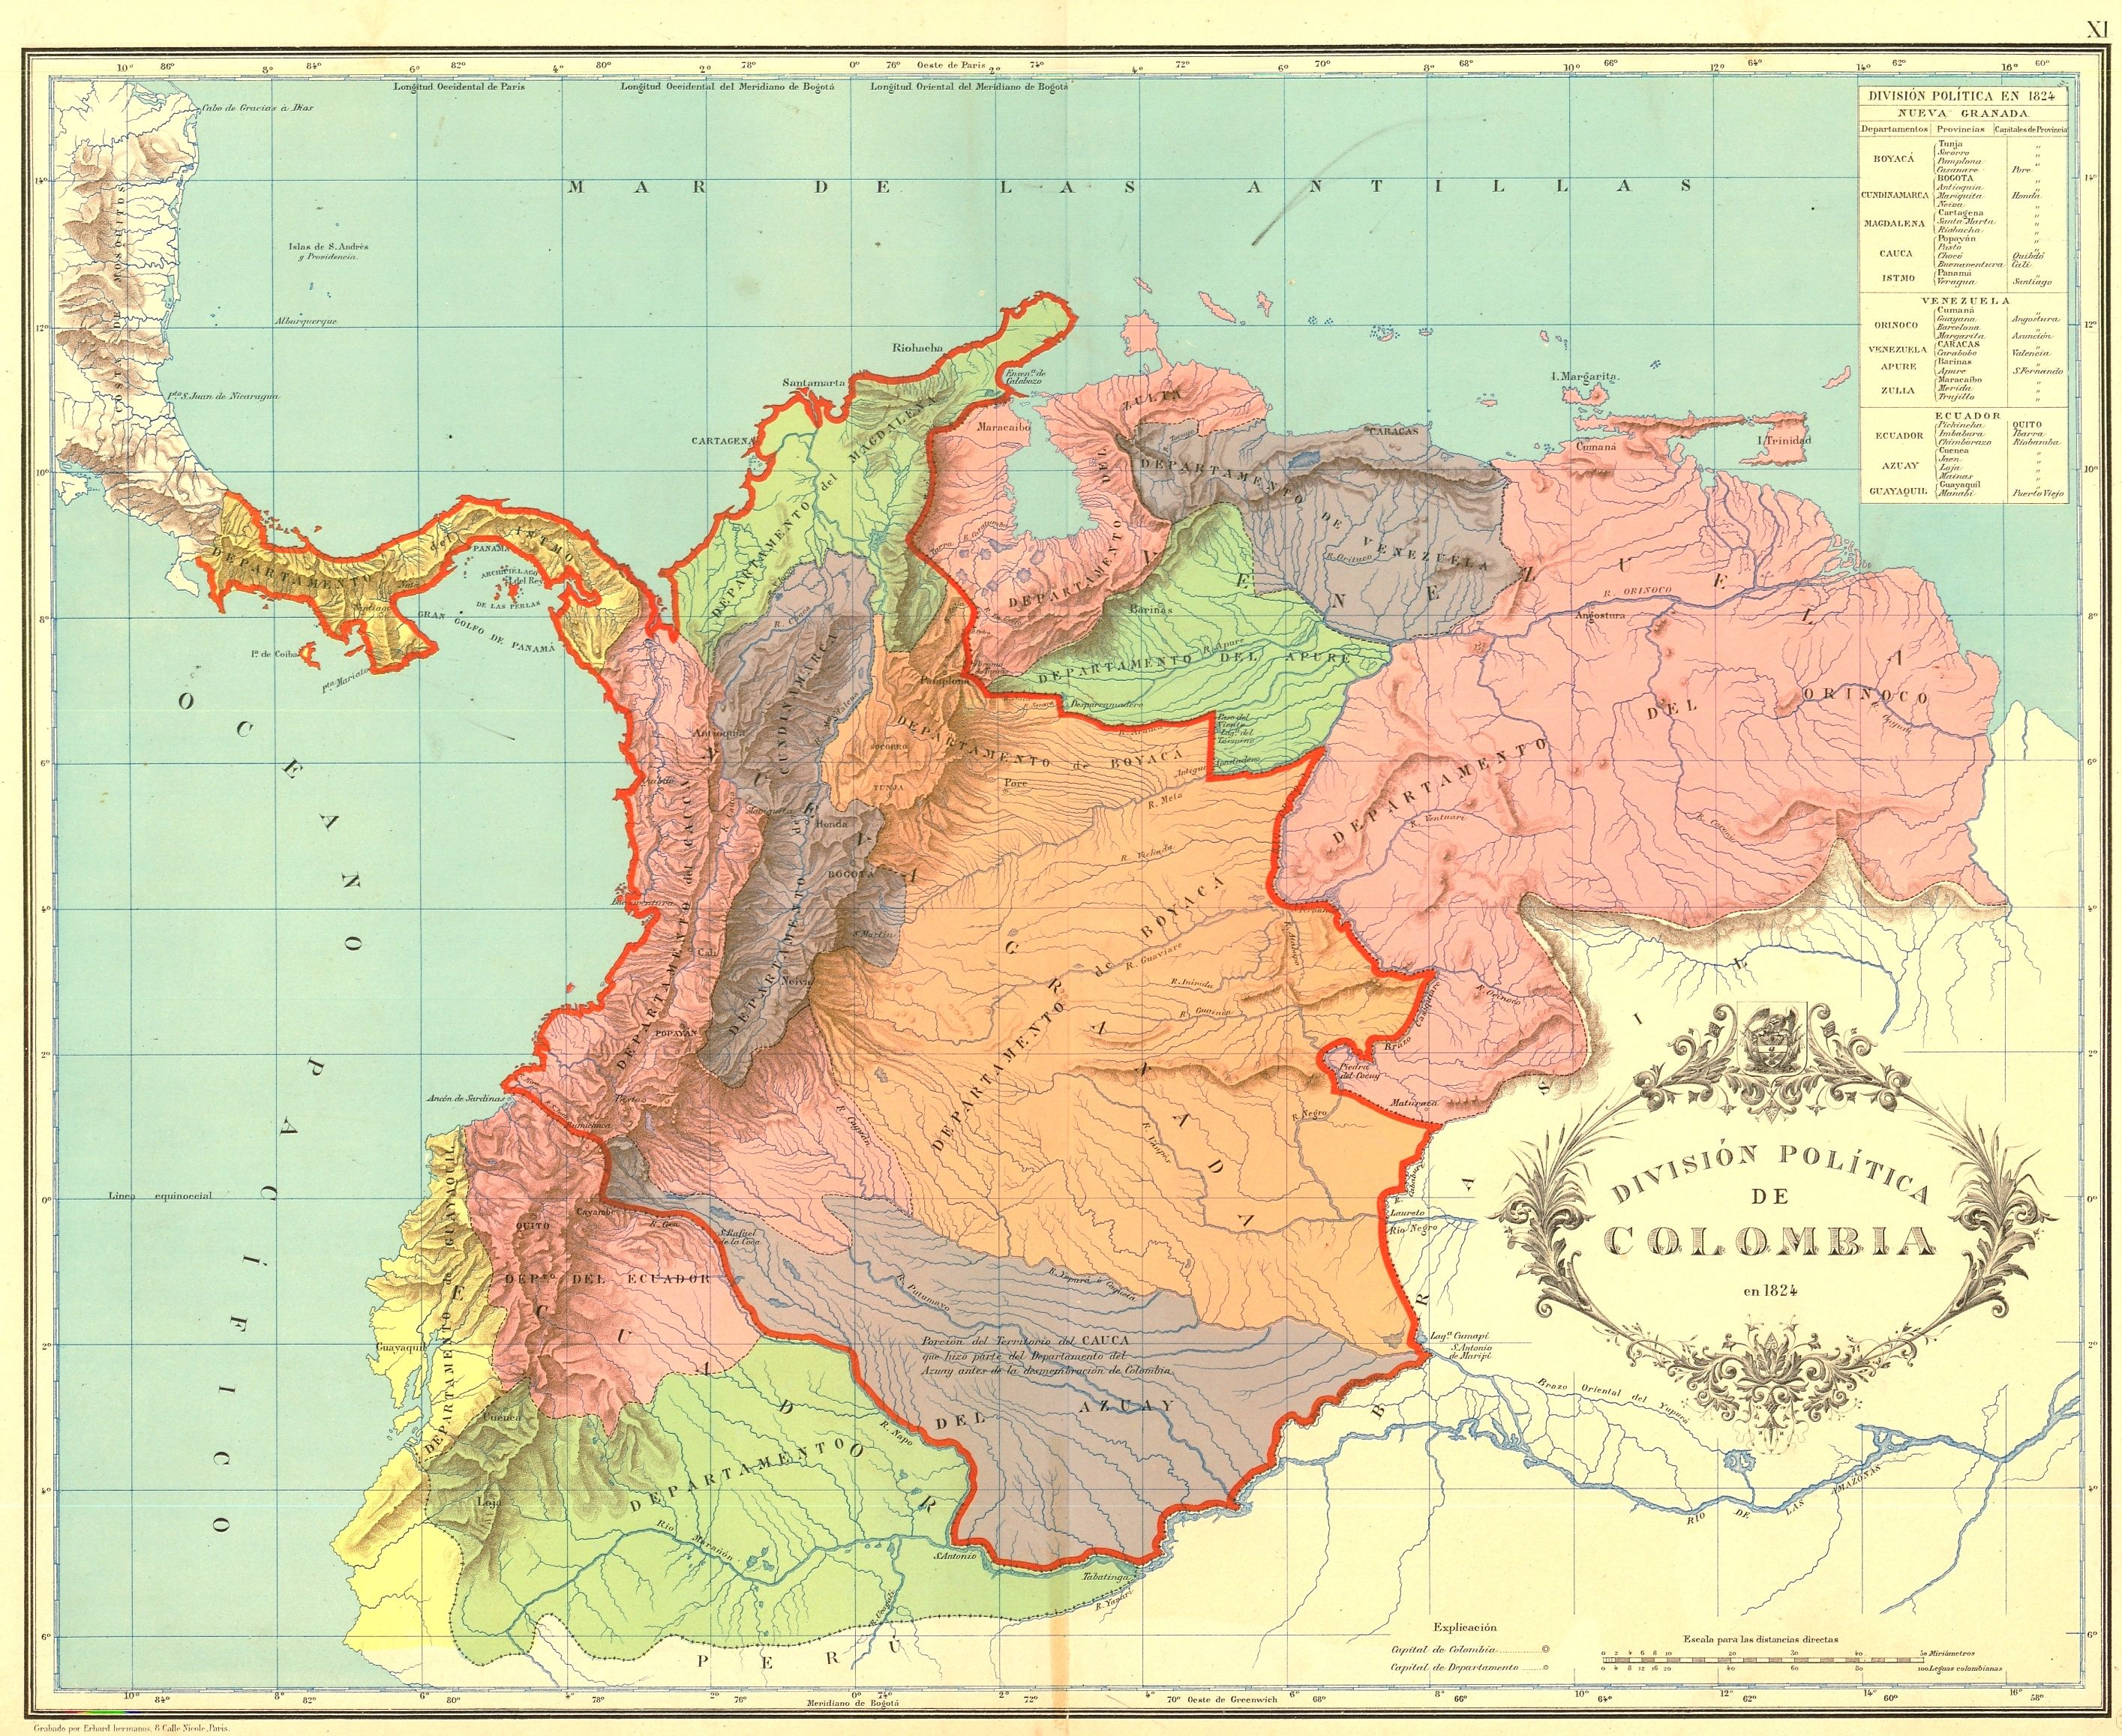 Flagmap Of Gran Colombia Maps Of South America Pinterest - South america map gran chaco